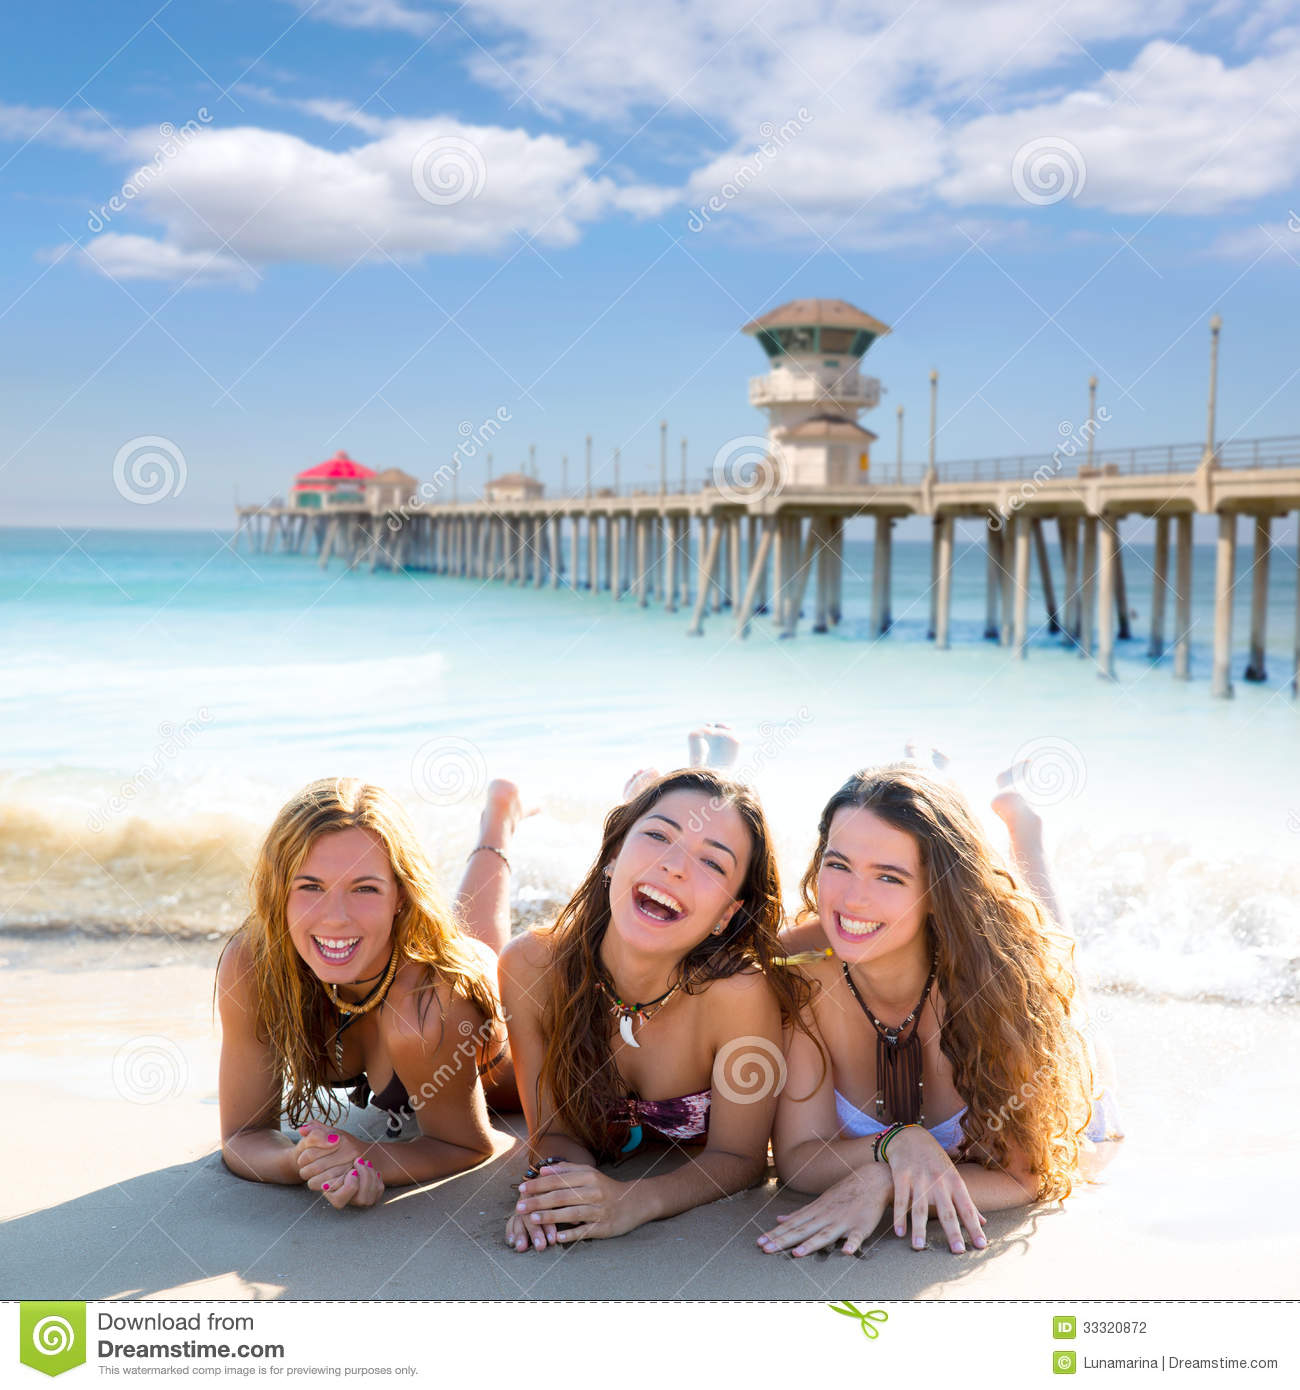 huntington beach single women Free list of sober housing with shared rooms in huntington beach huntington beach orange huntington beach all women homes single women female.